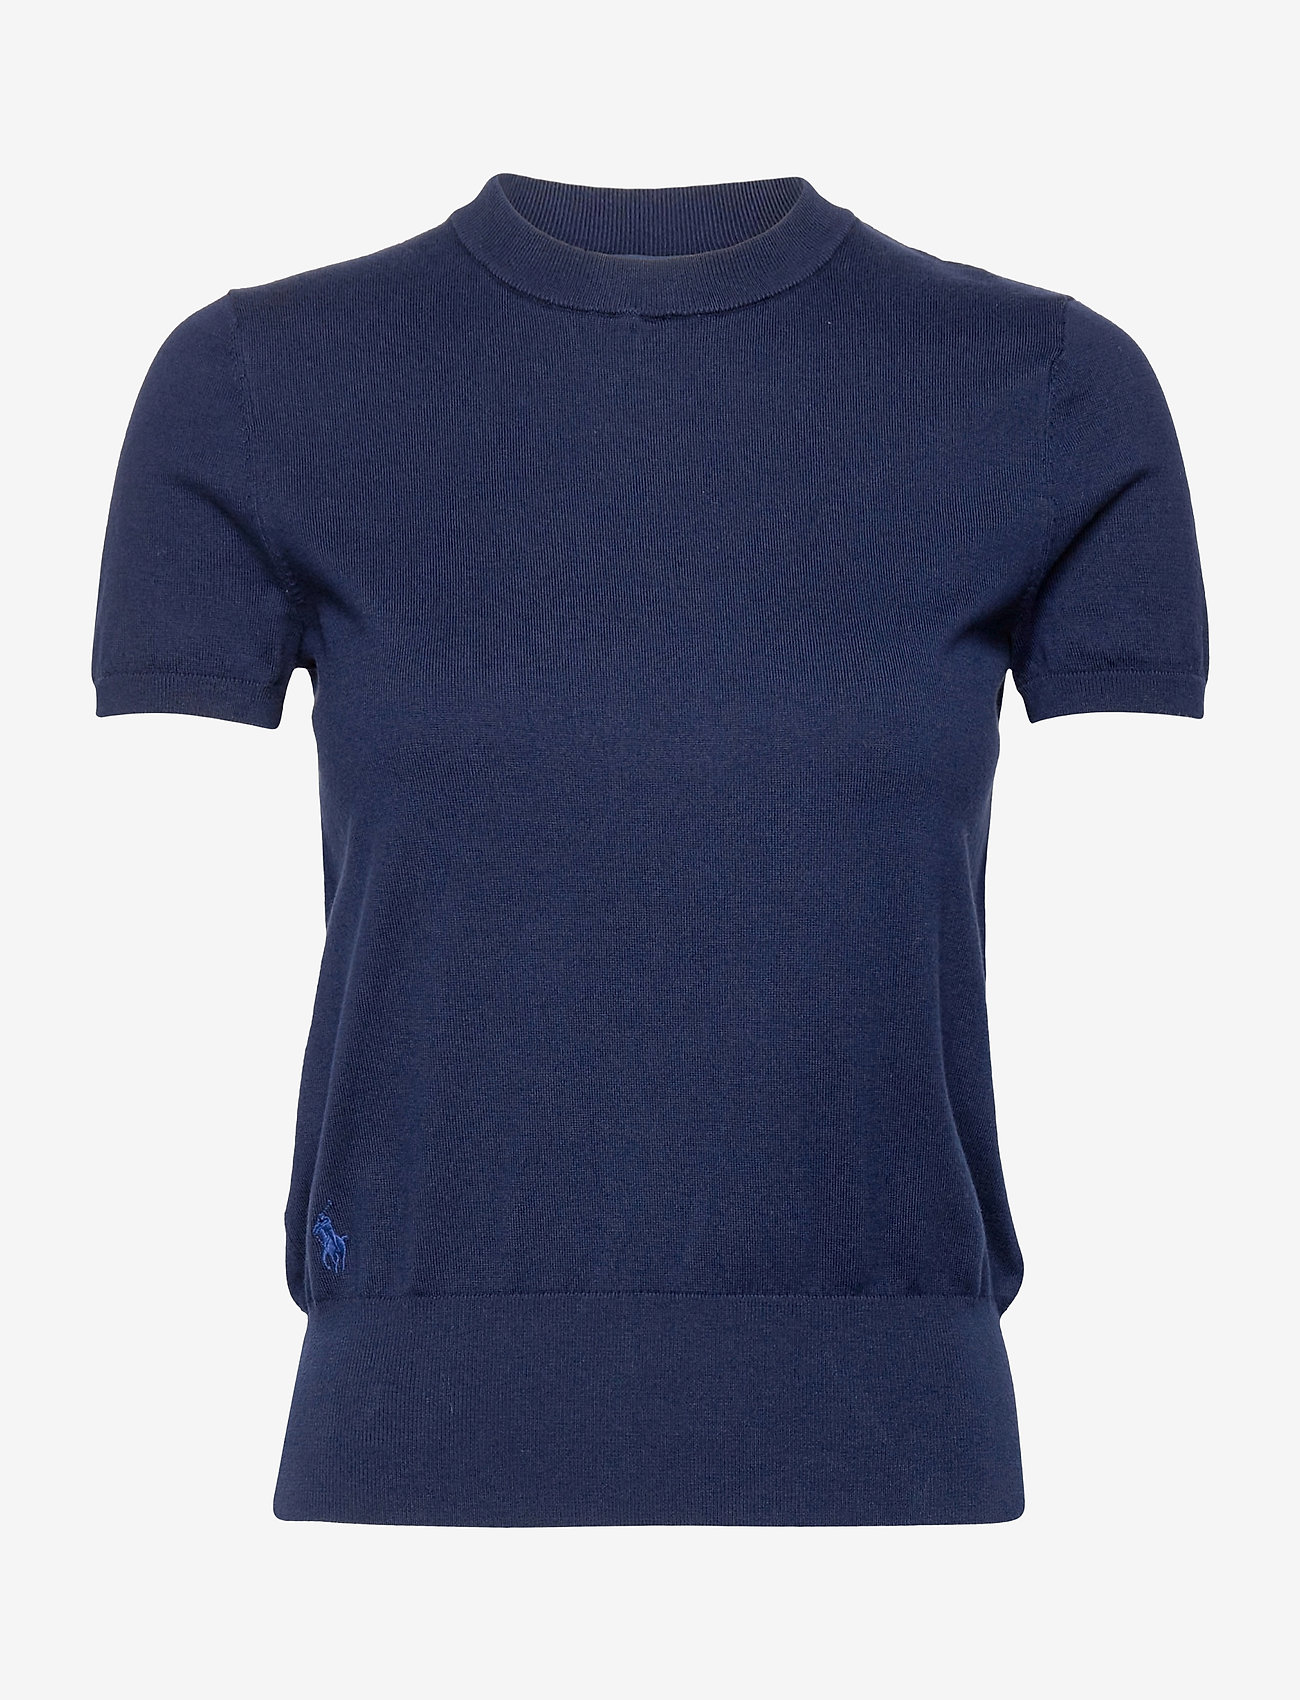 Polo Ralph Lauren - Cotton Short-Sleeve Sweater - strikkede toppe - bright navy - 1